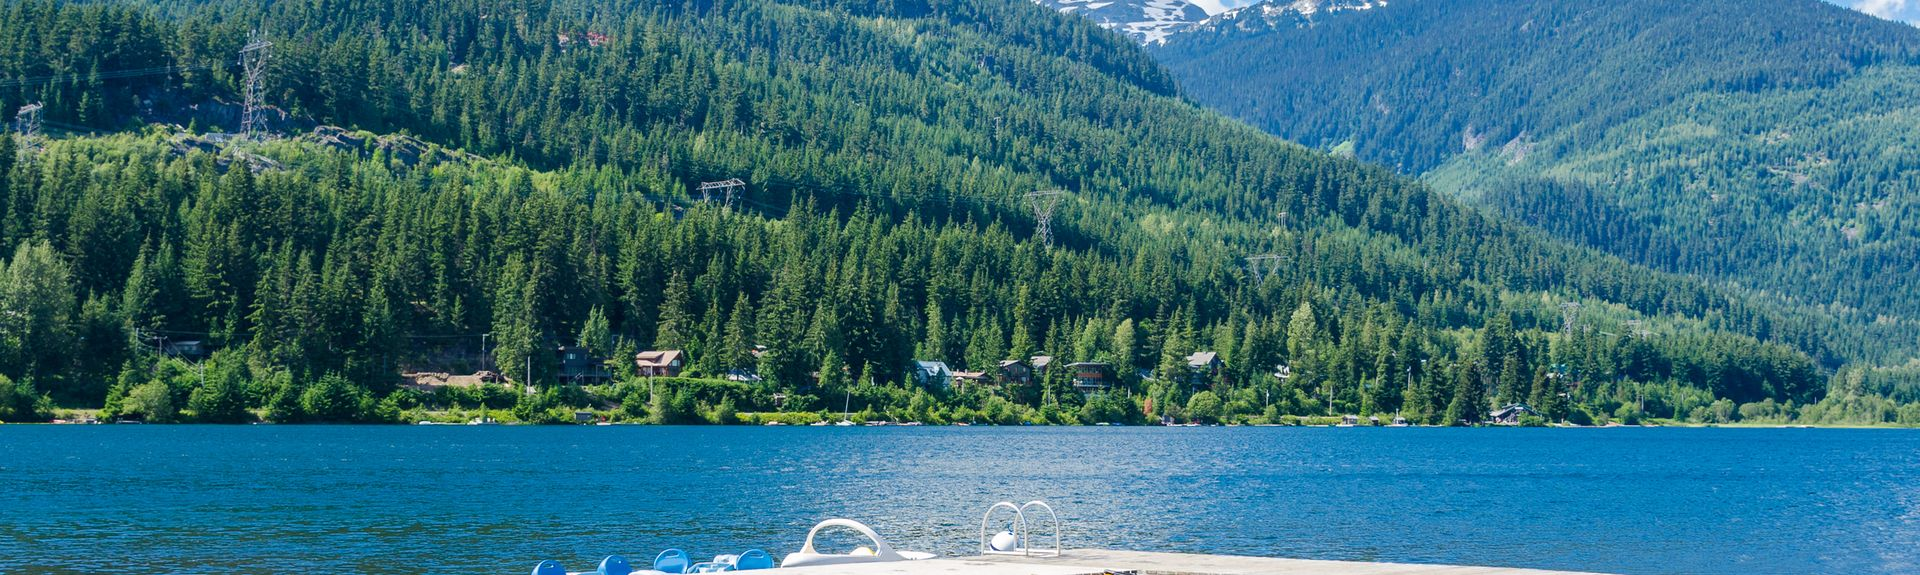 Alta Lake, Whistler, British Columbia, Canada